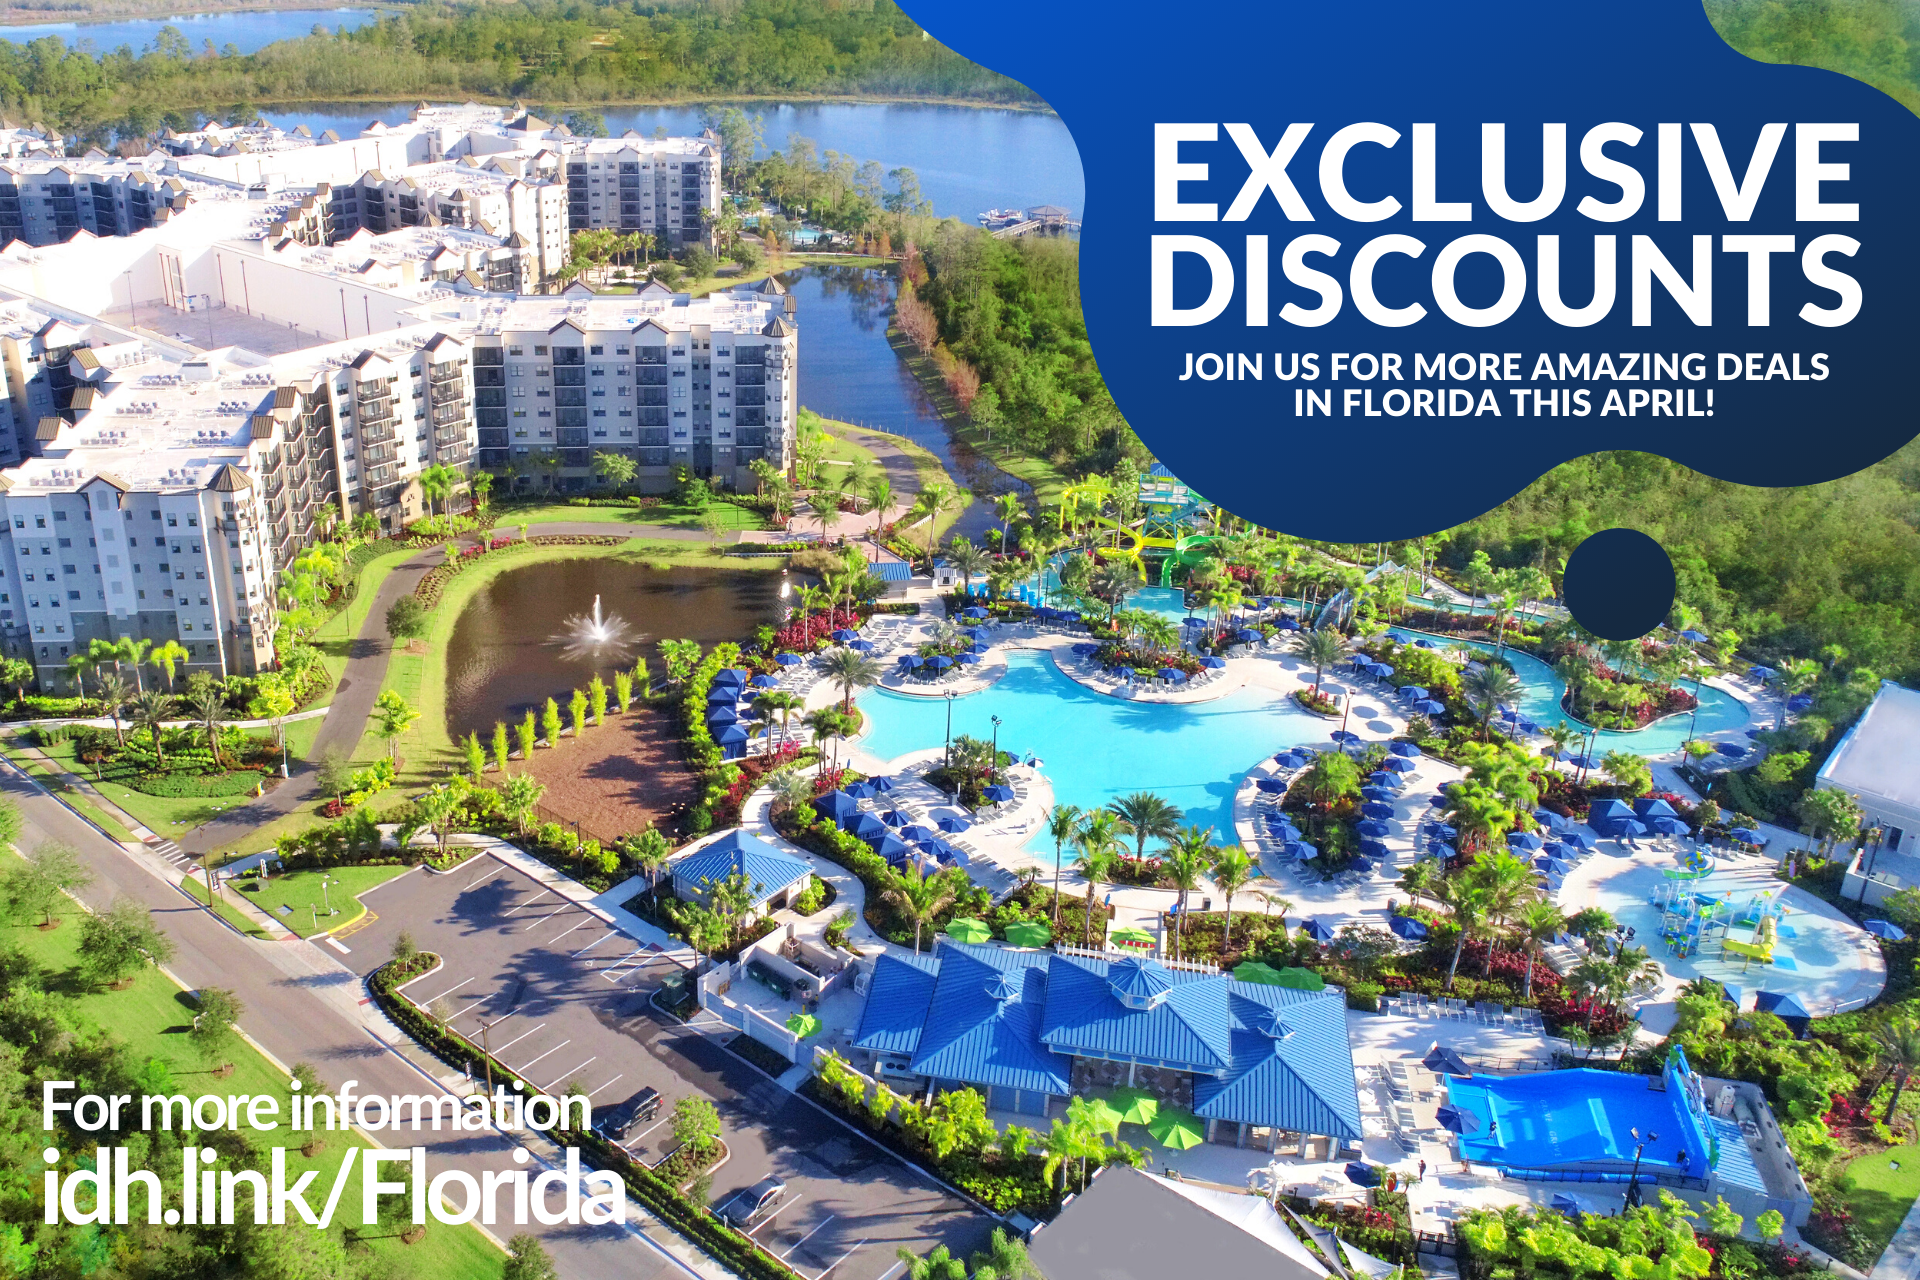 Ideal Homes international Brings Exclusive Discounts and Amazing Deals for Investors and Realtors in Florida